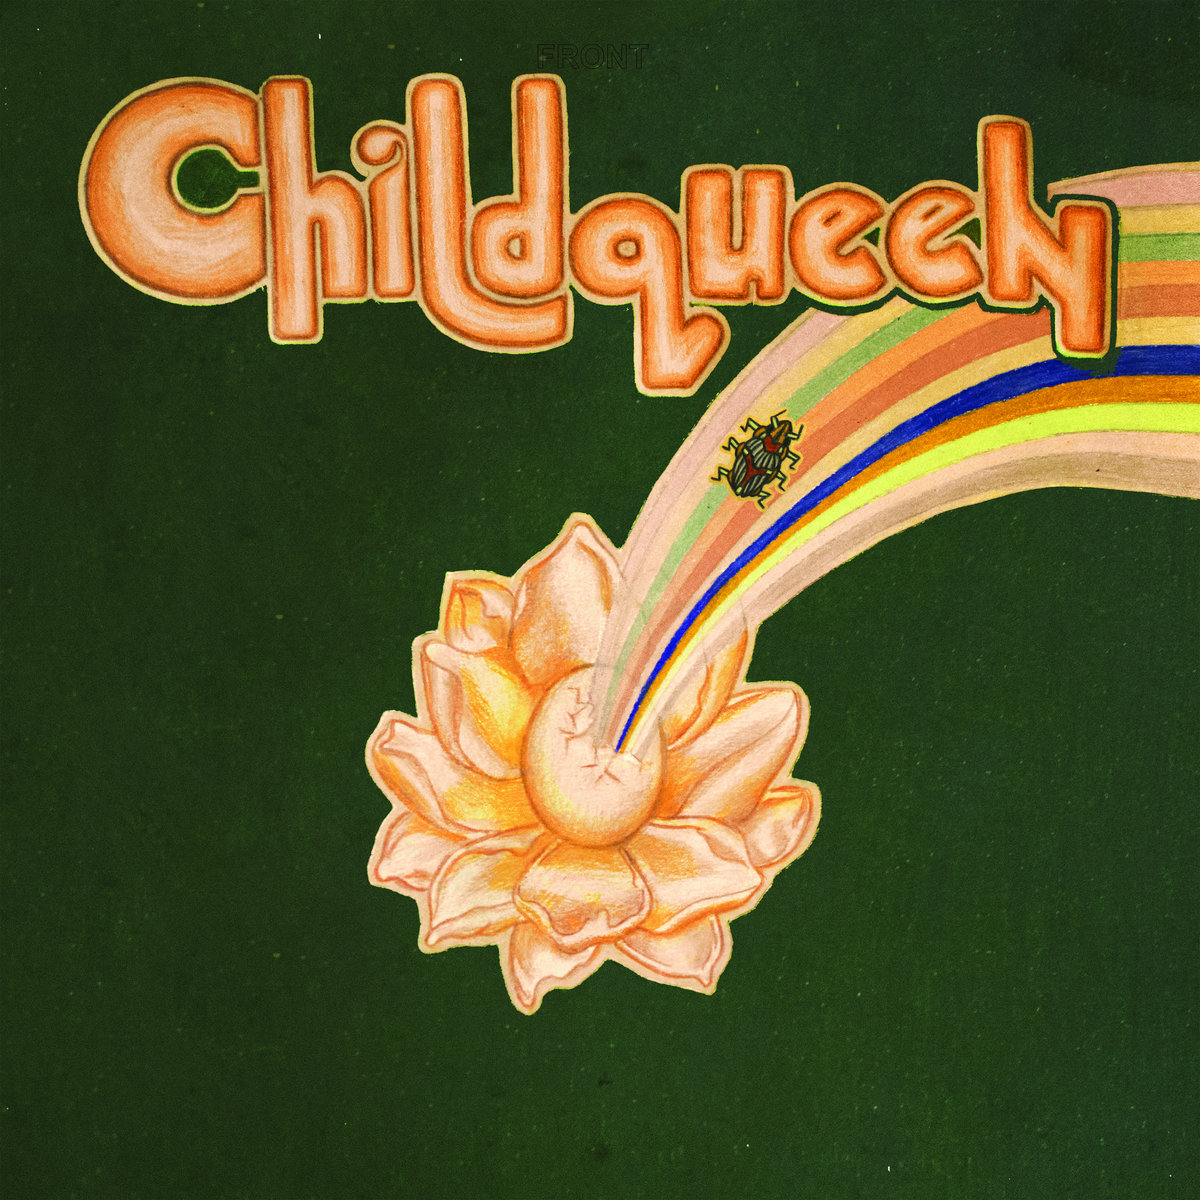 Childqueen  Kadhja Bonet   LINKS   Official Site   Facebook   Twitter   Instagram    LISTEN ON   Spotify    Apple Music